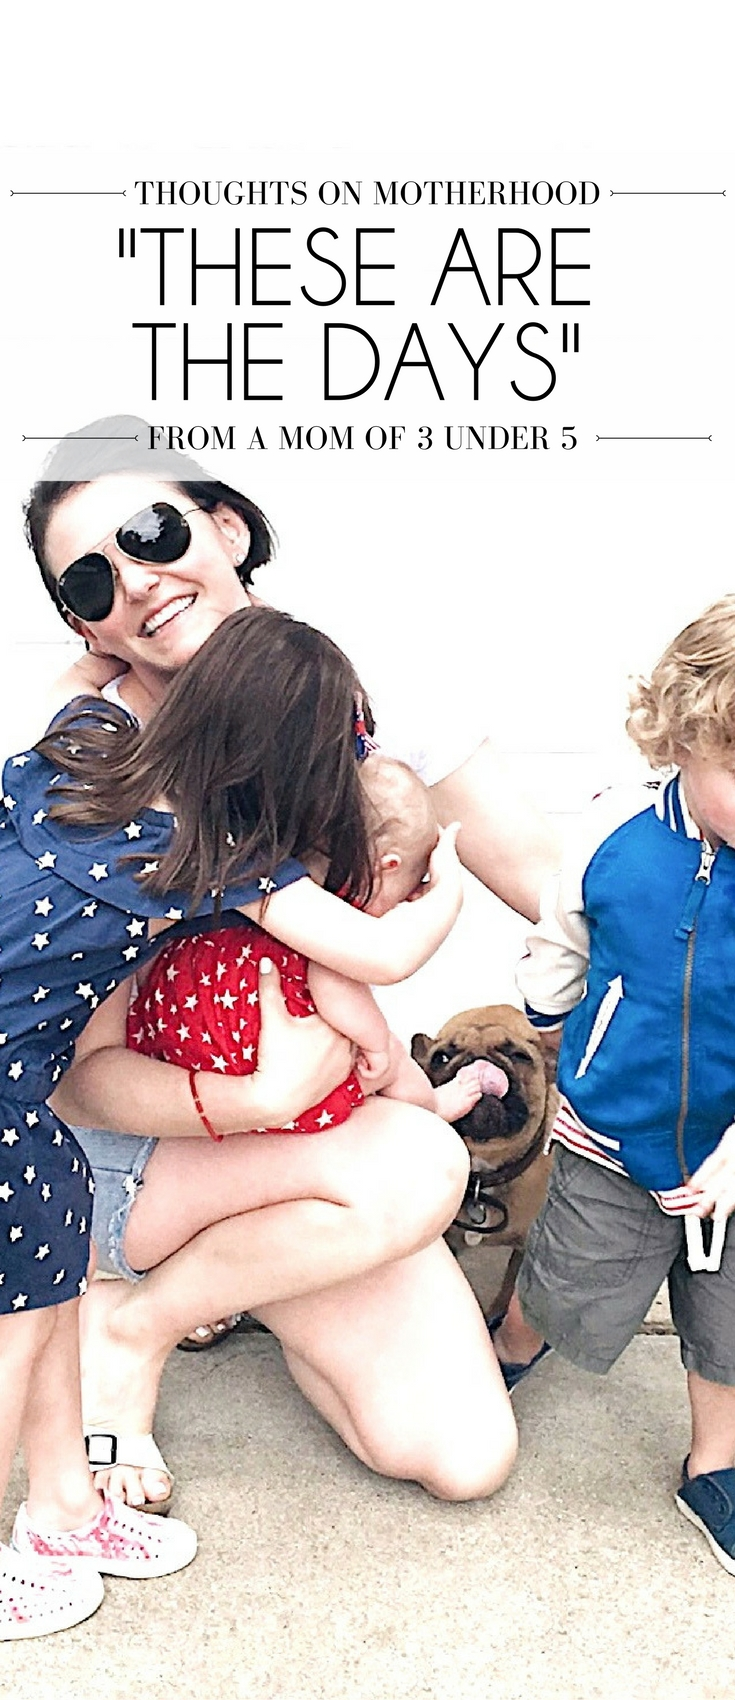 these are the days - thoughts on motherhood from a mom of three kids under age 5